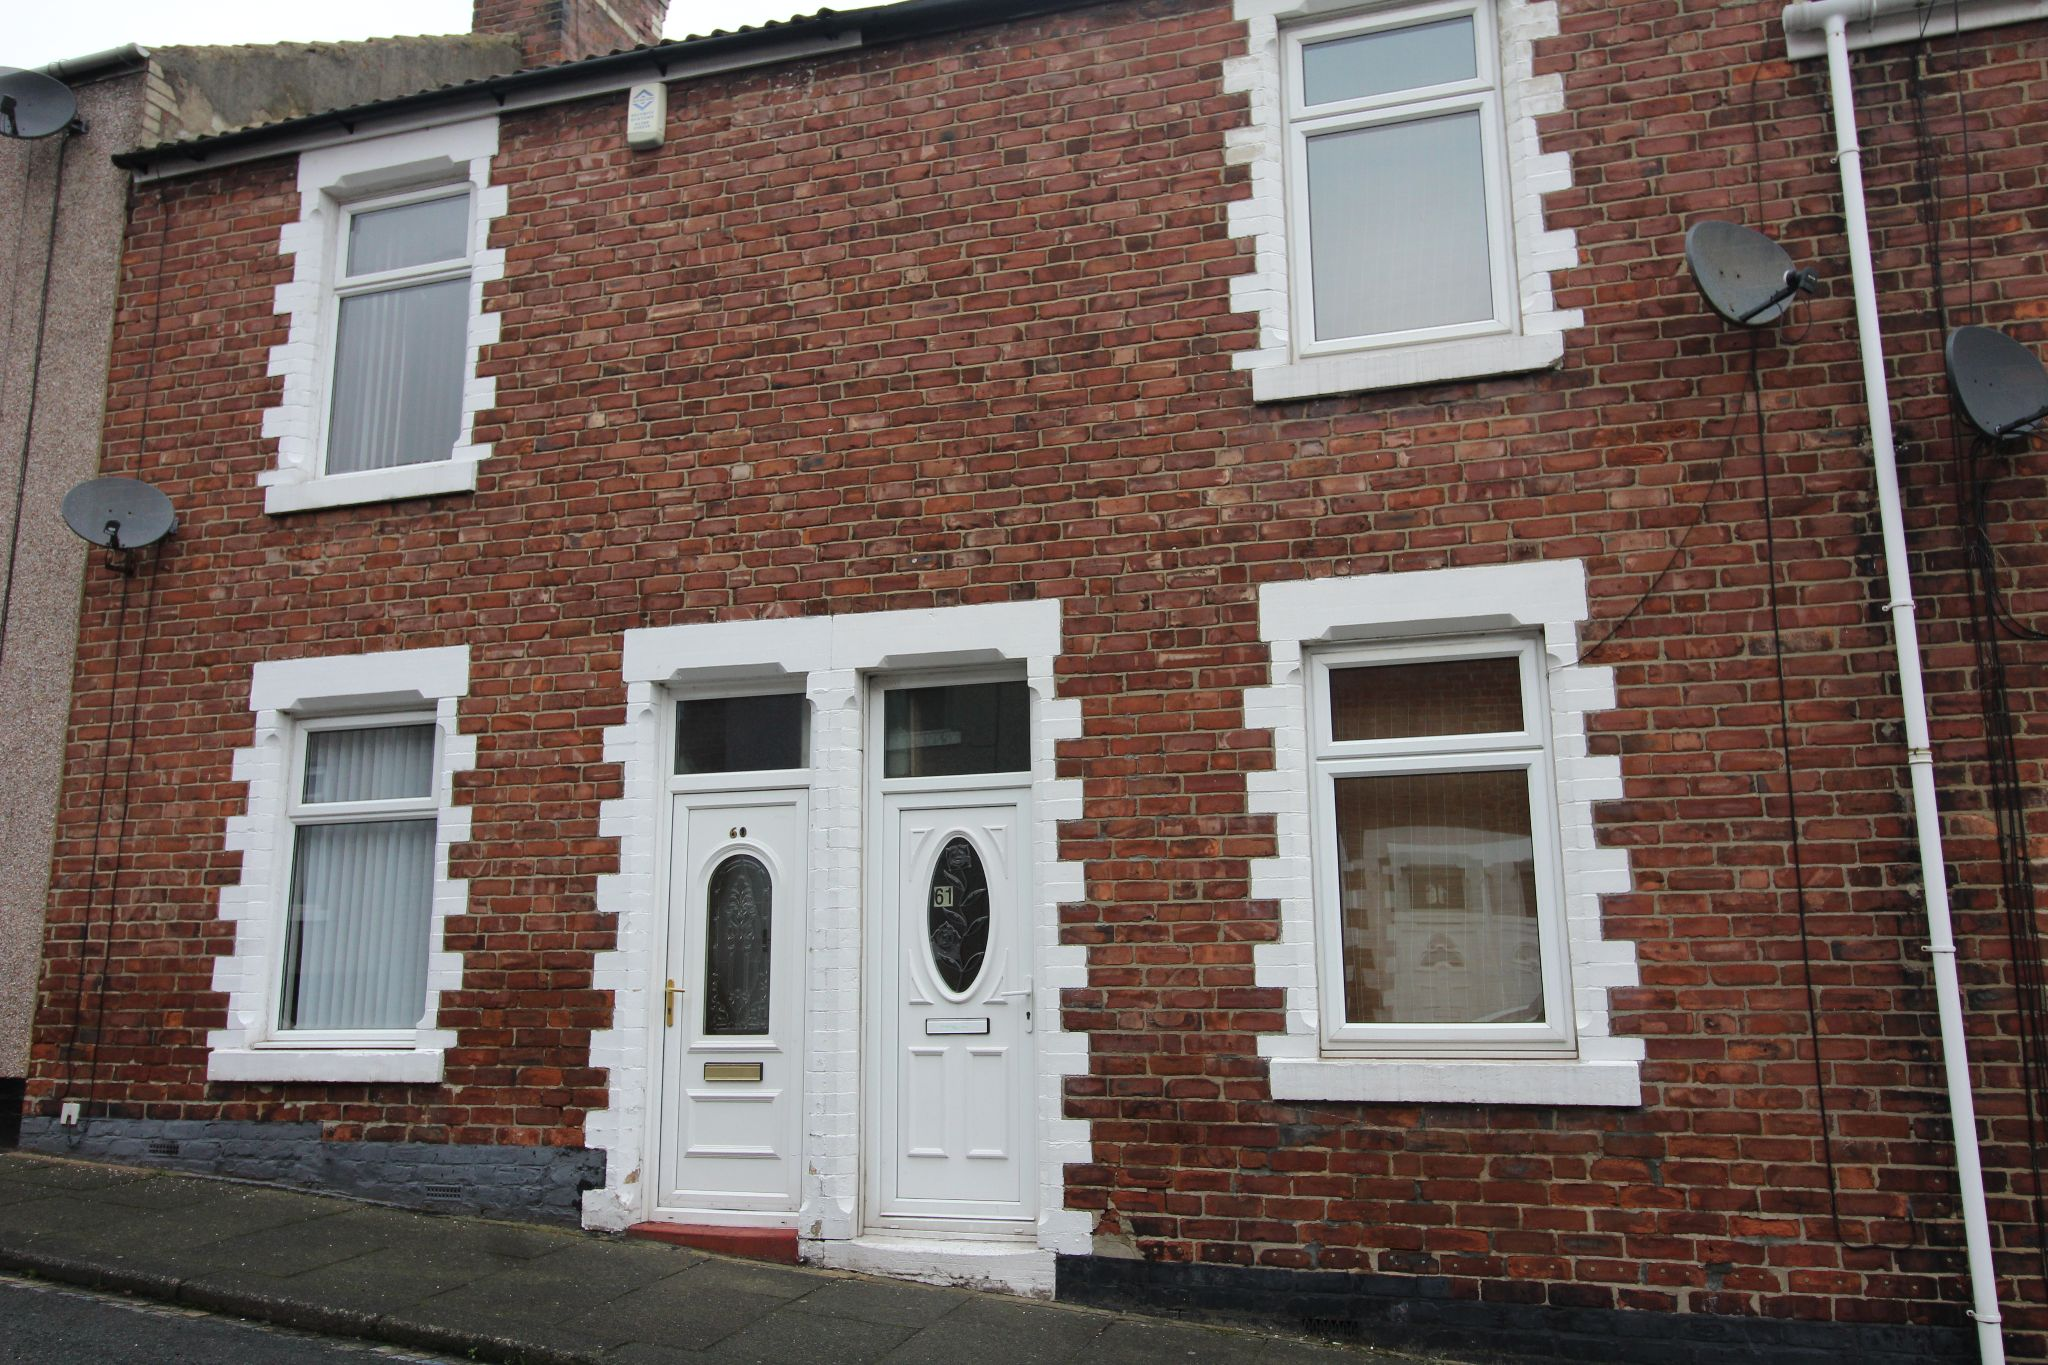 2 bedroom mid terraced house Let in Bishop Auckland - Photograph 2.